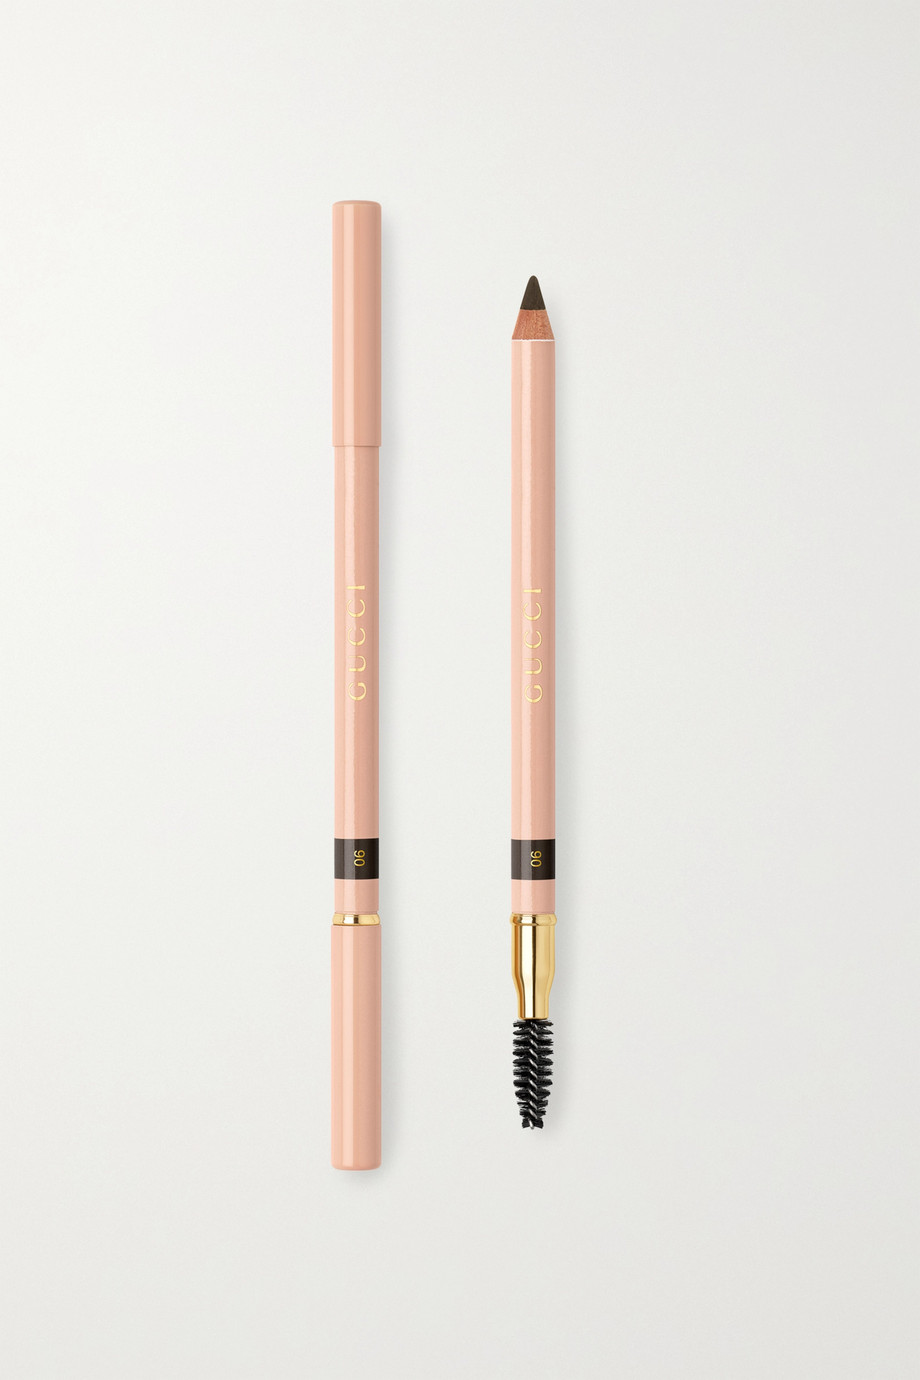 Gucci Beauty Powder Eyebrow Pencil - Noir